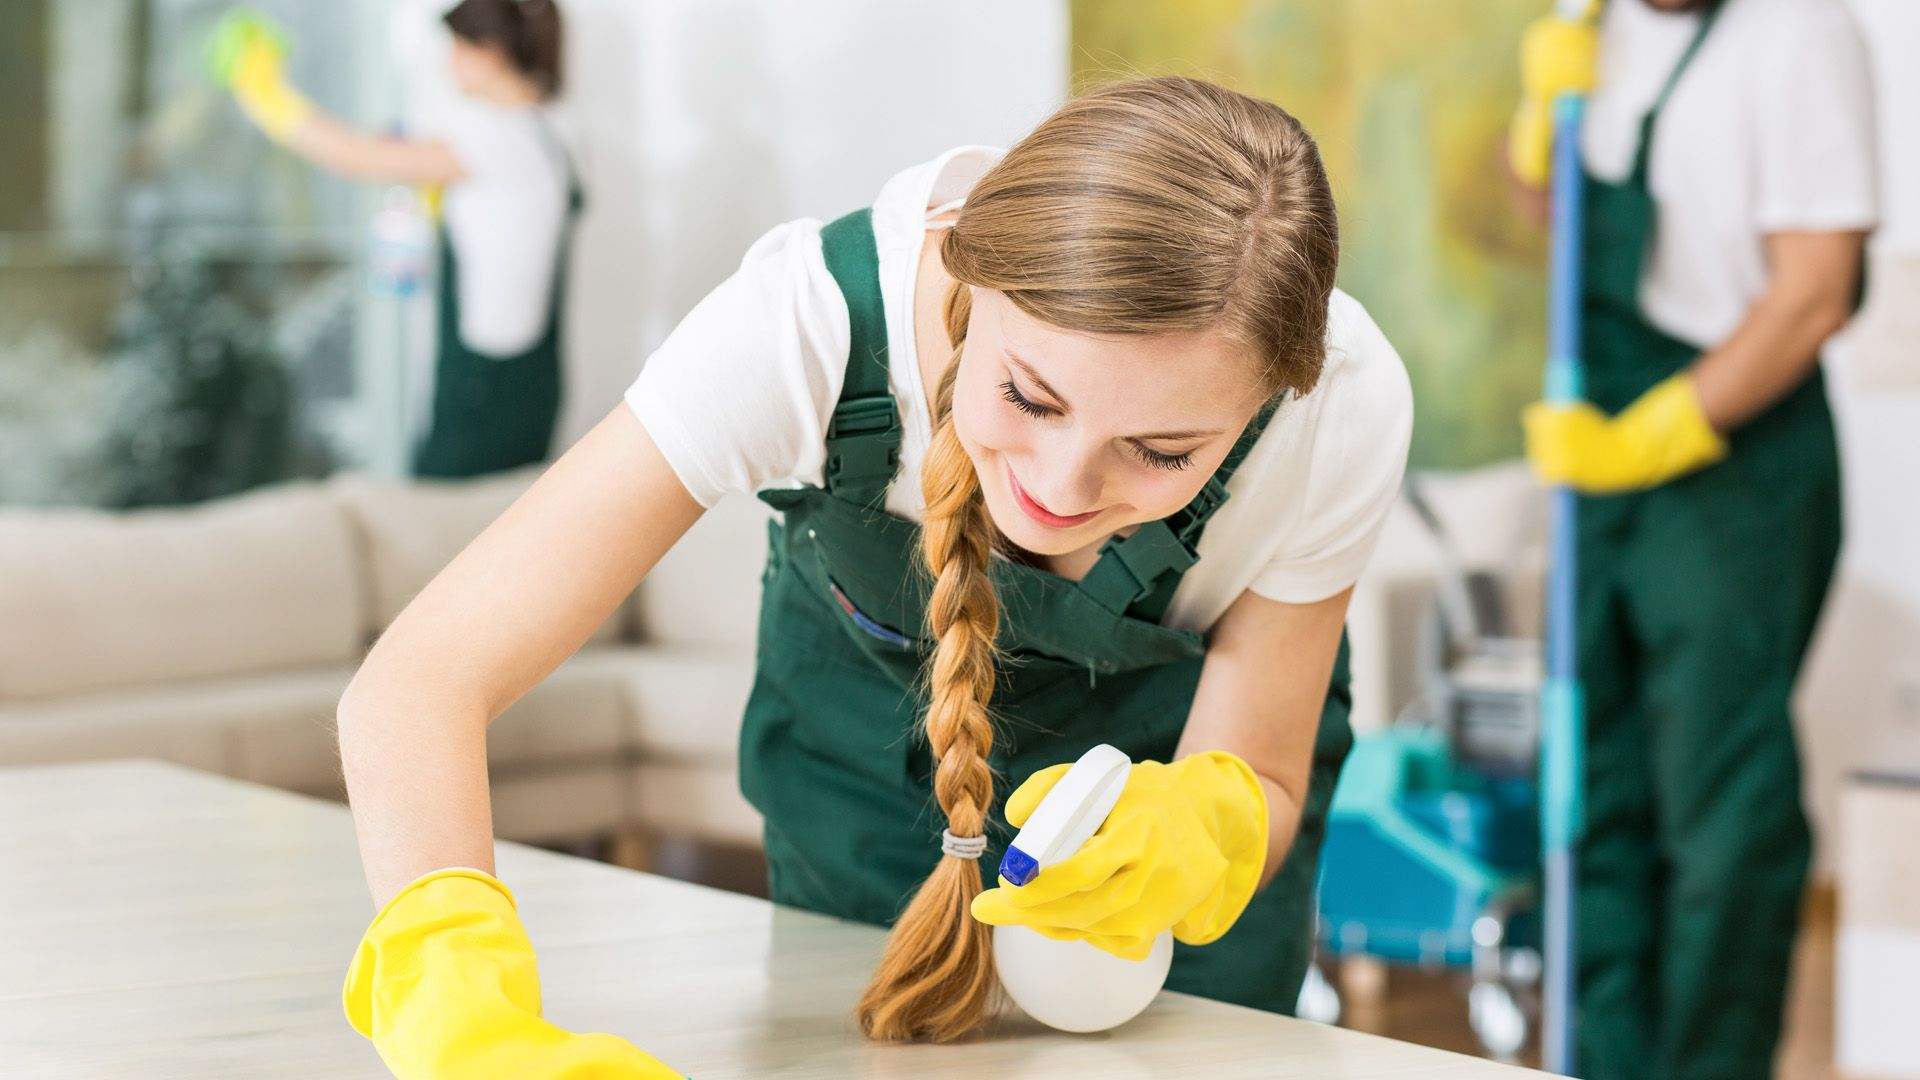 Is the cleaning company (entreprise de nettoyage) effective for maintaining the spaces?